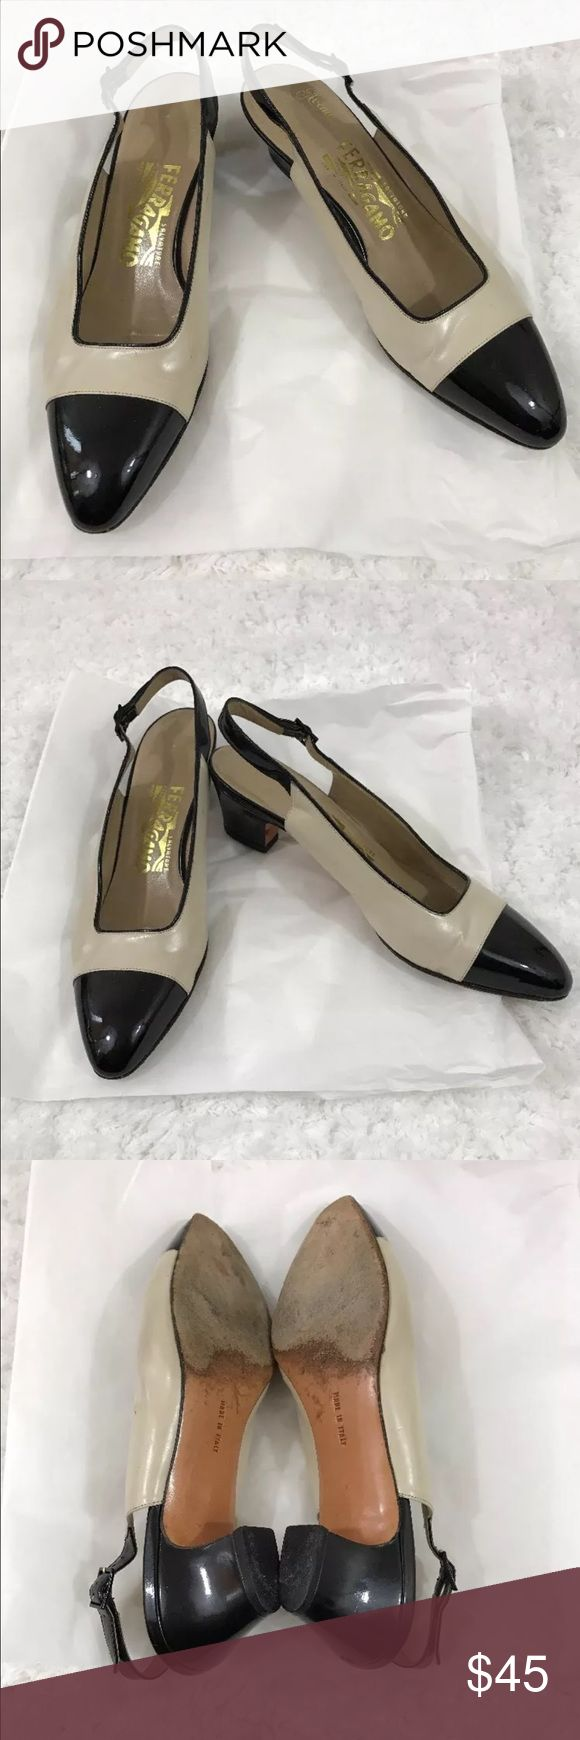 Salvatore Ferragamo slingback Pump Size 7.5 Hello and Thank you for checking my listing.  This item is pre-owned Salvatore Ferragamo women slingback Pump black/tan size 7.5 made in Italy good condition without box Salvatore Ferragamo Shoes